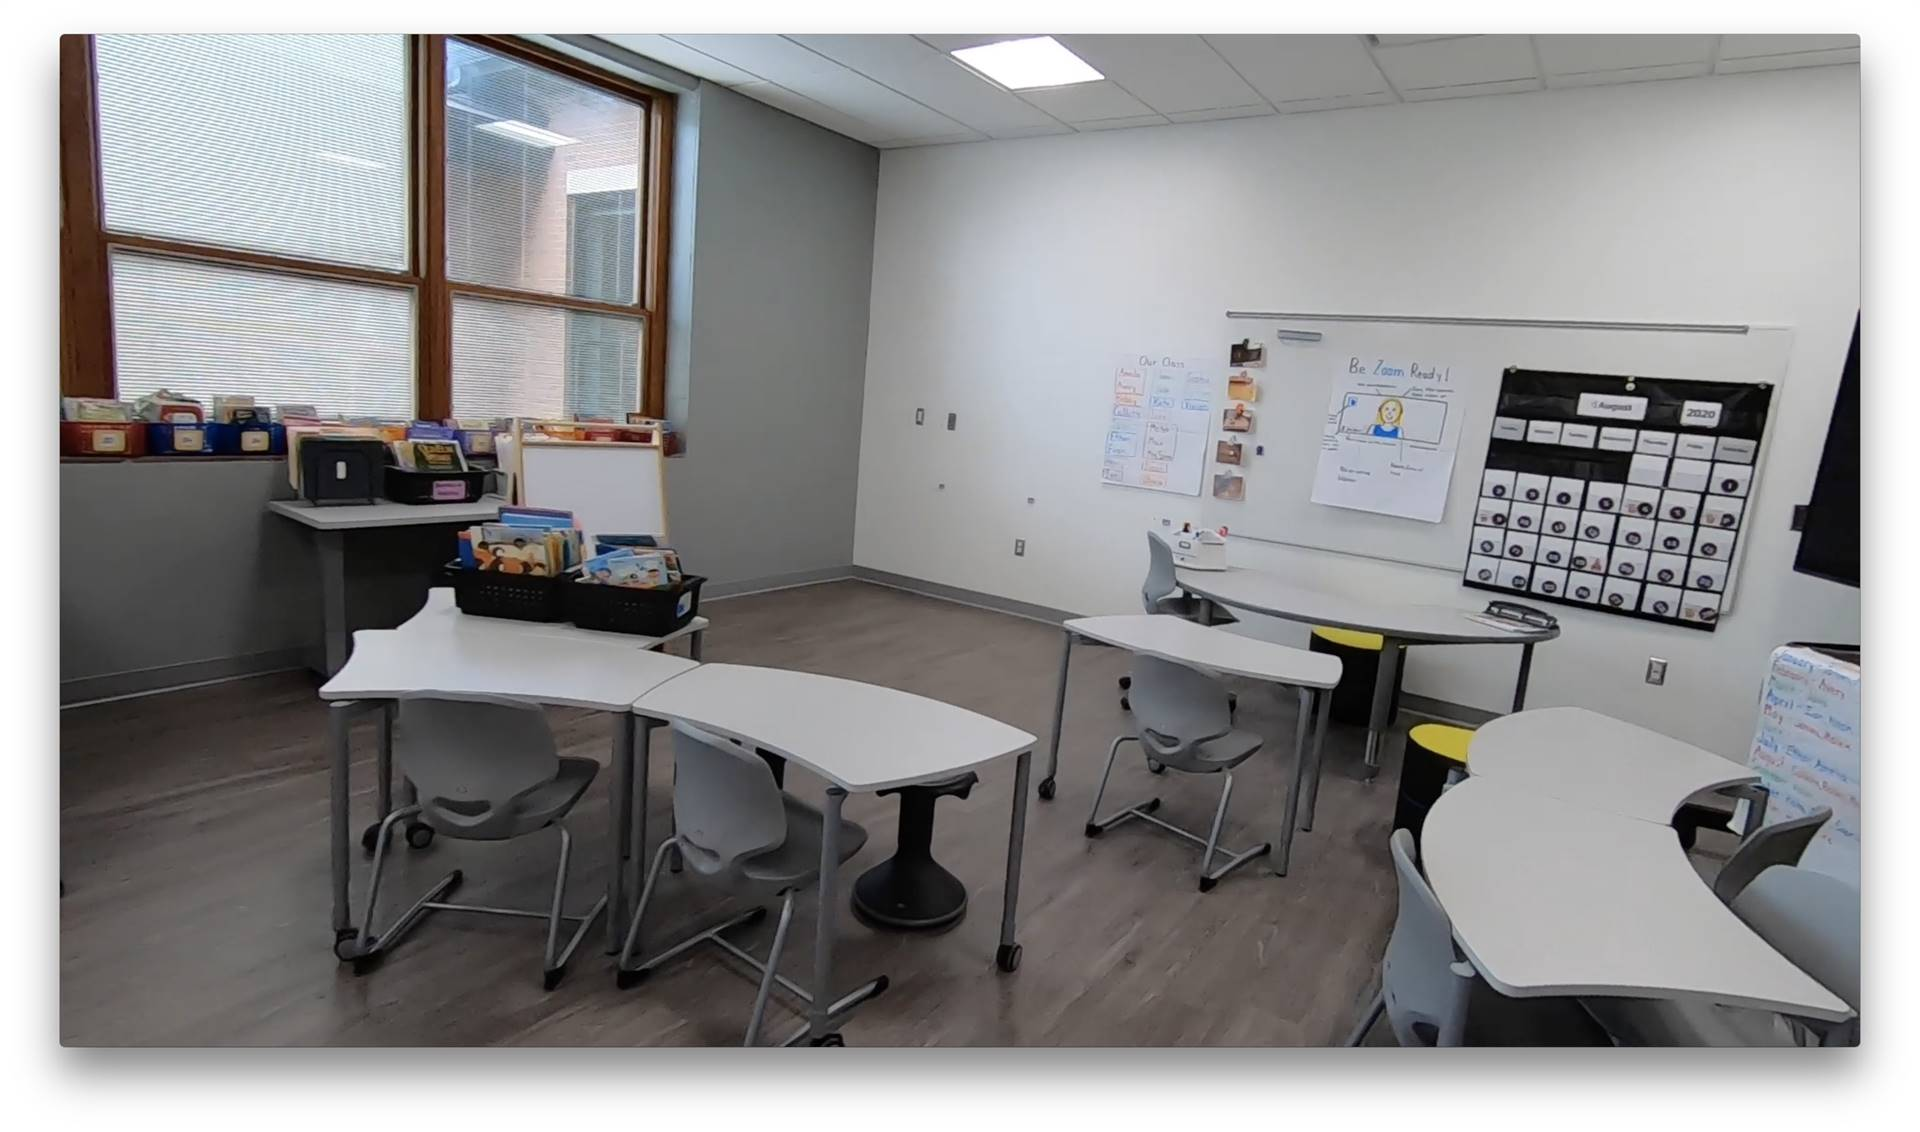 A renovated classroom